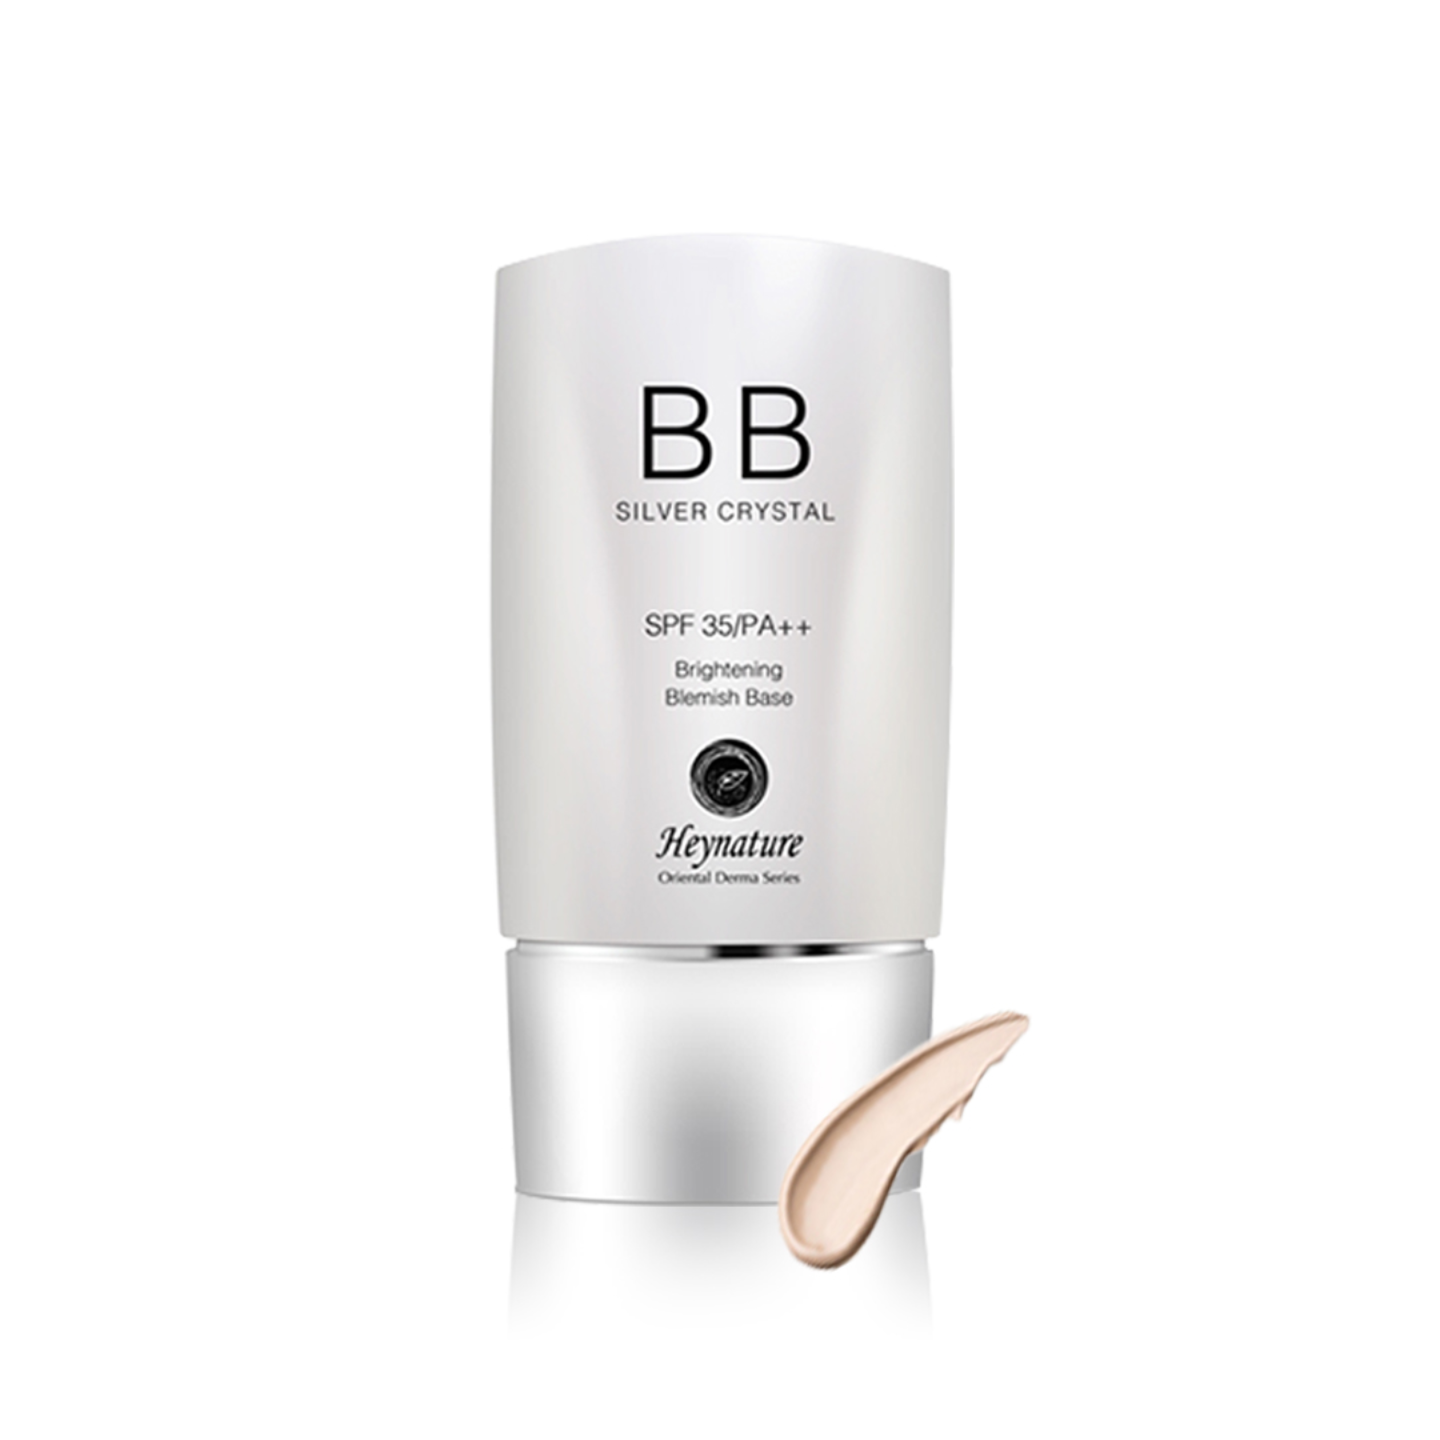 Heynature Silver Crystal Aqua Blast BB Cream - 40g